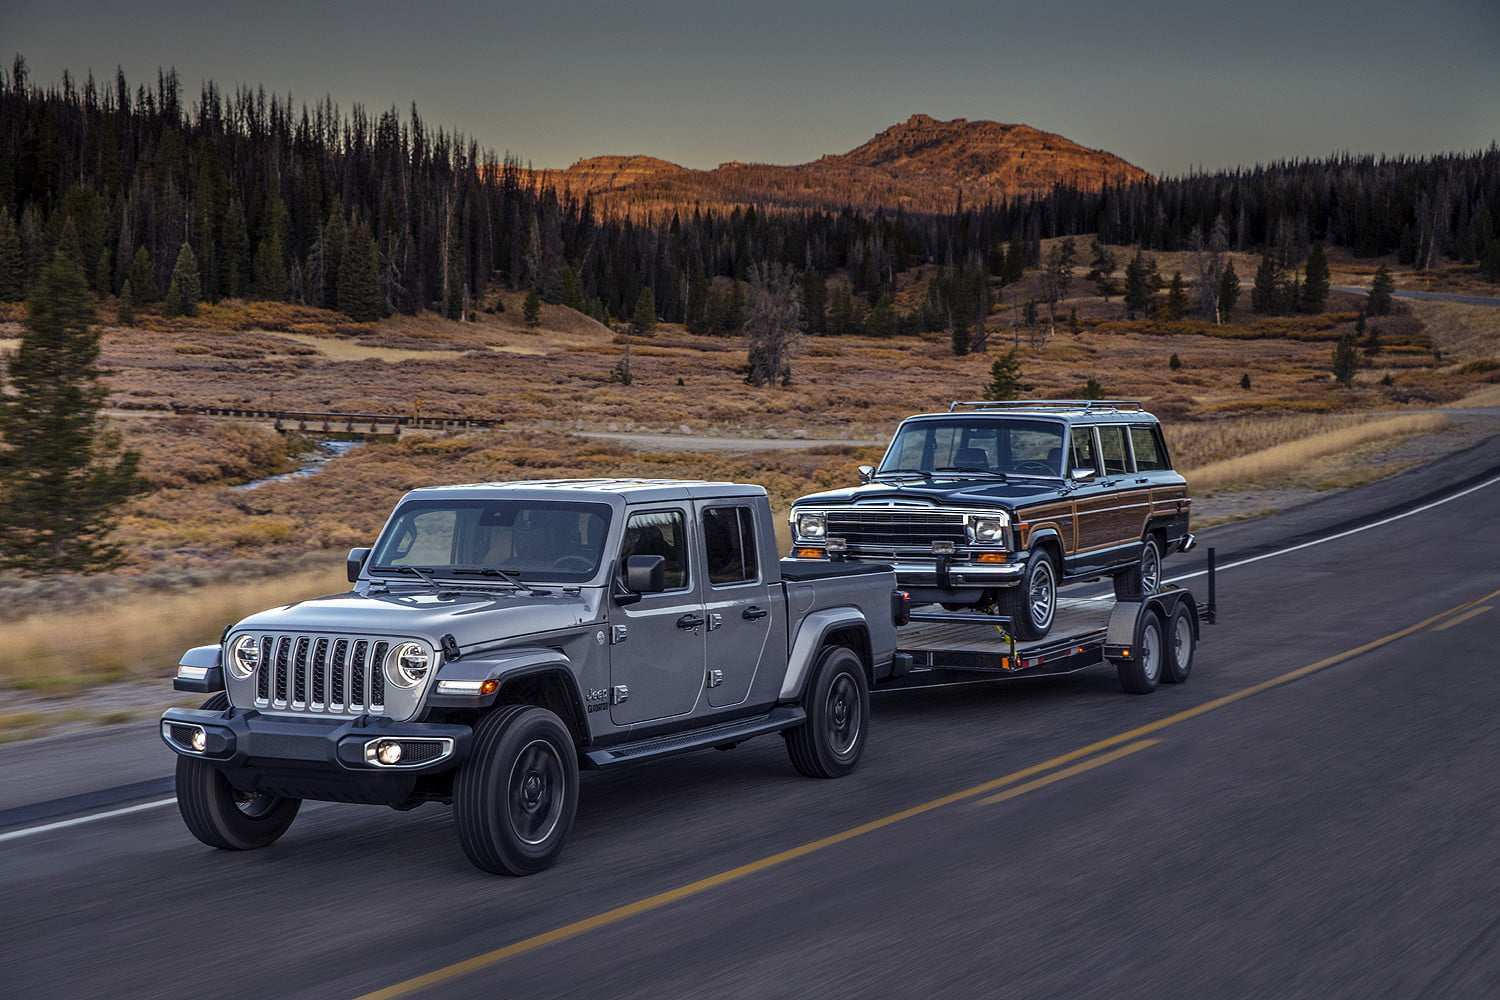 79 New 2020 Jeep Pickup Truck Redesign and Concept with 2020 Jeep Pickup Truck